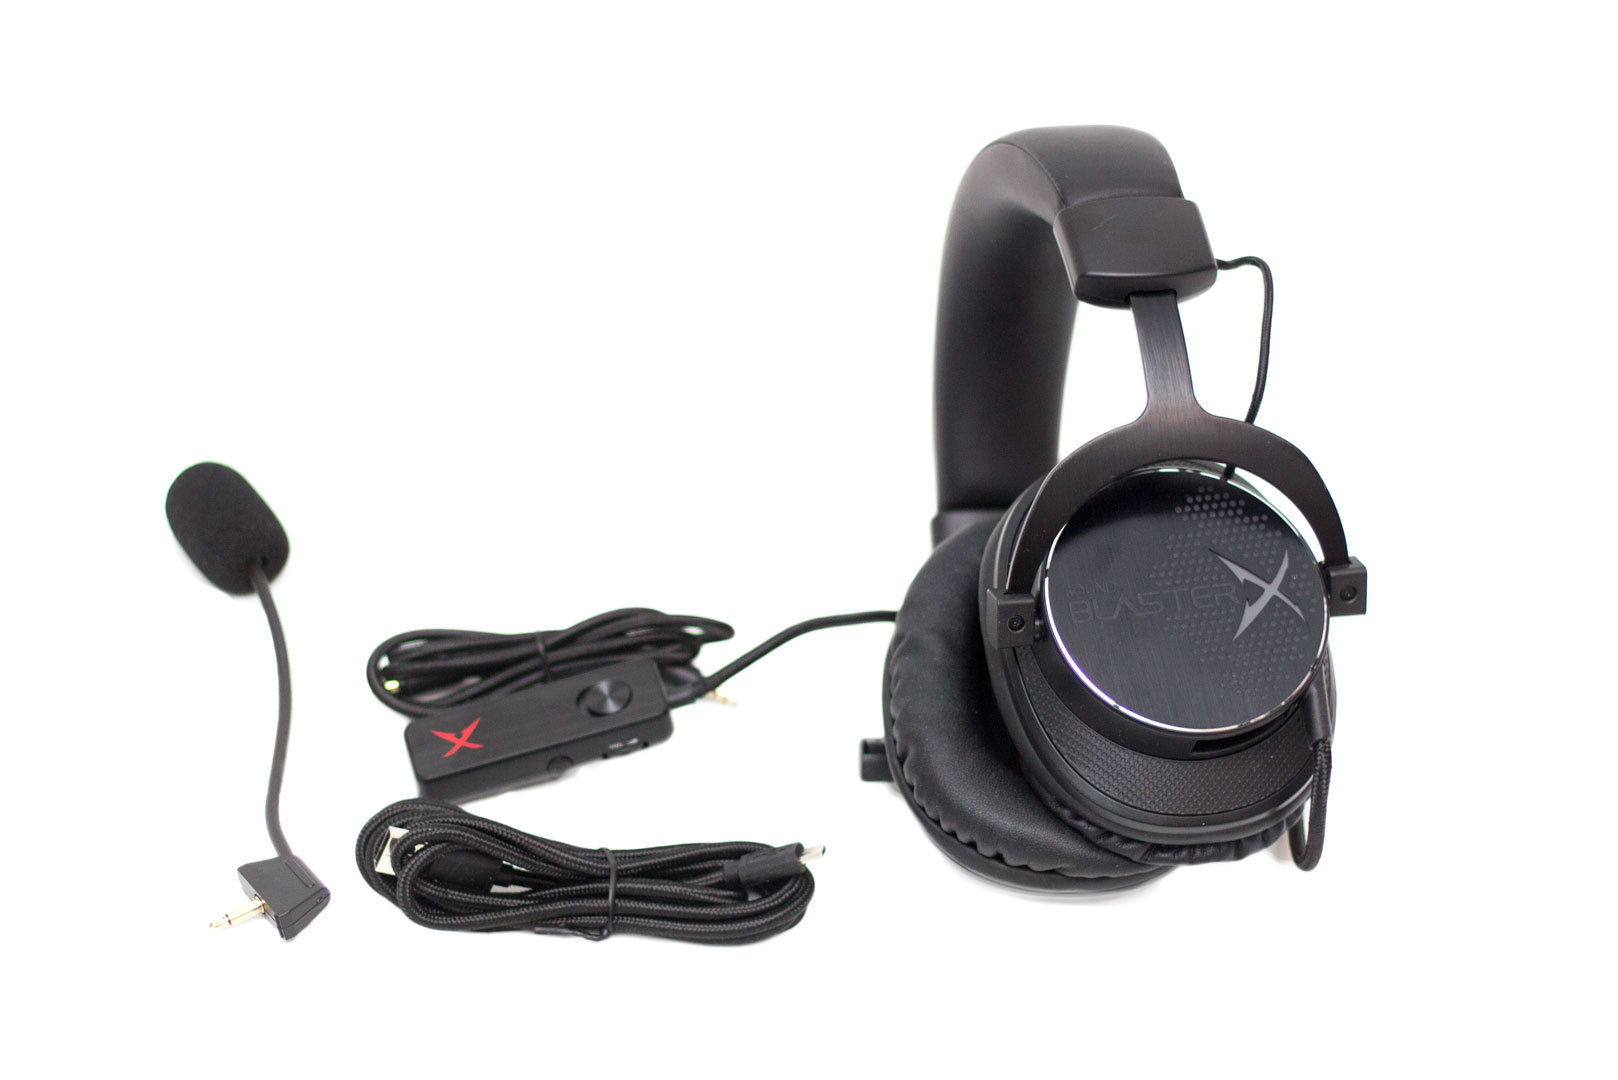 ed6053e9dae Creative Sound BlasterX H7 Review | bit-tech.net